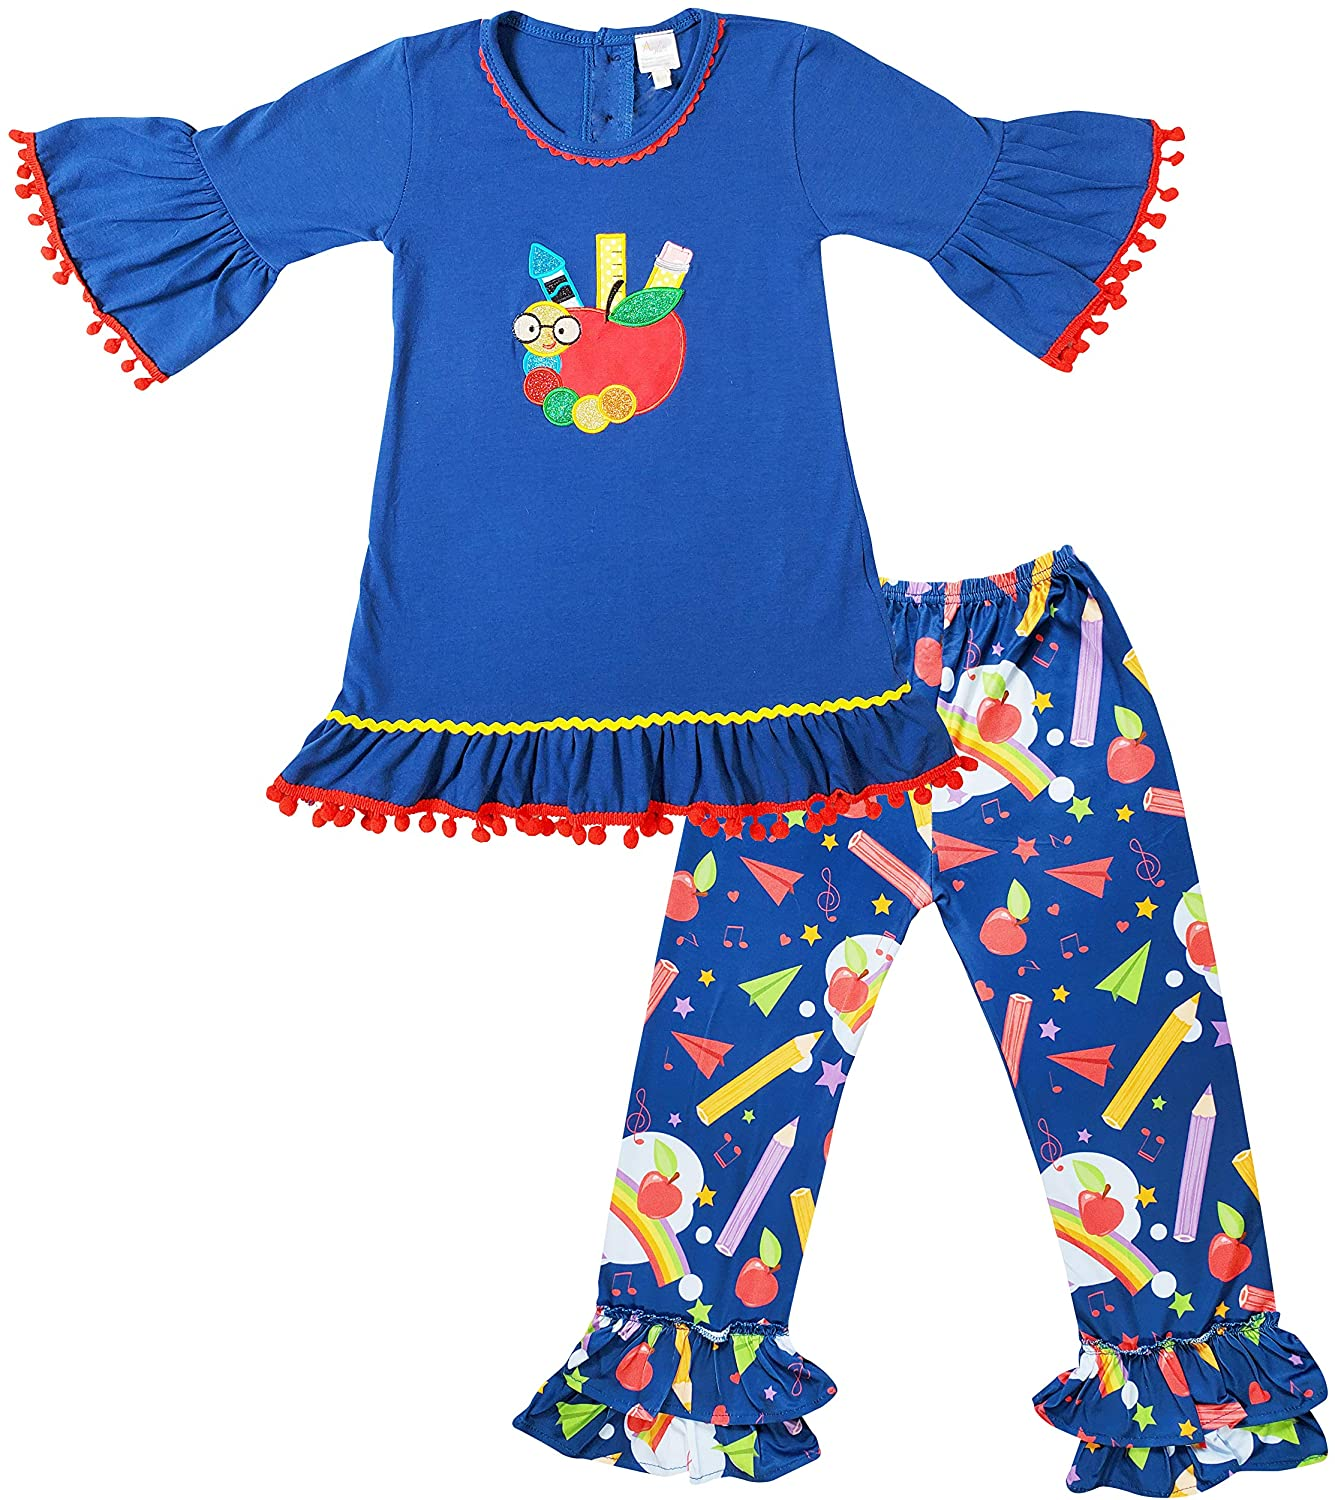 Angeline Boutique Toddler Little Girls Back to School Outfits - Tunic Top with Capris or Pants or Skirt